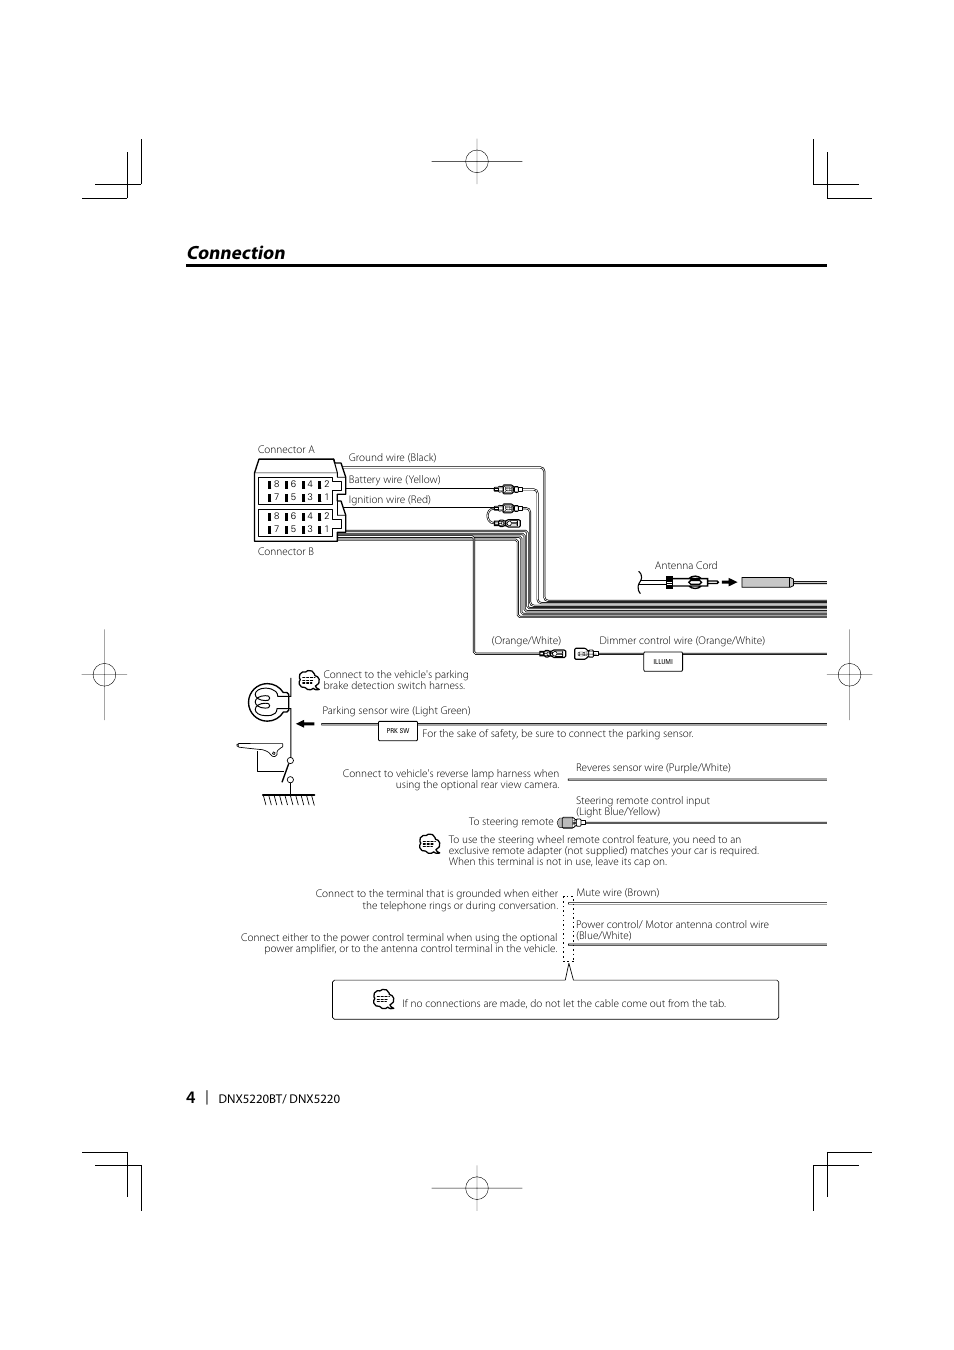 Kenwood Steering Wheel Wiring Diagram Detailed Schematics Amp Connection Dnx5220bt User Manual Page 4 72 Exploded View